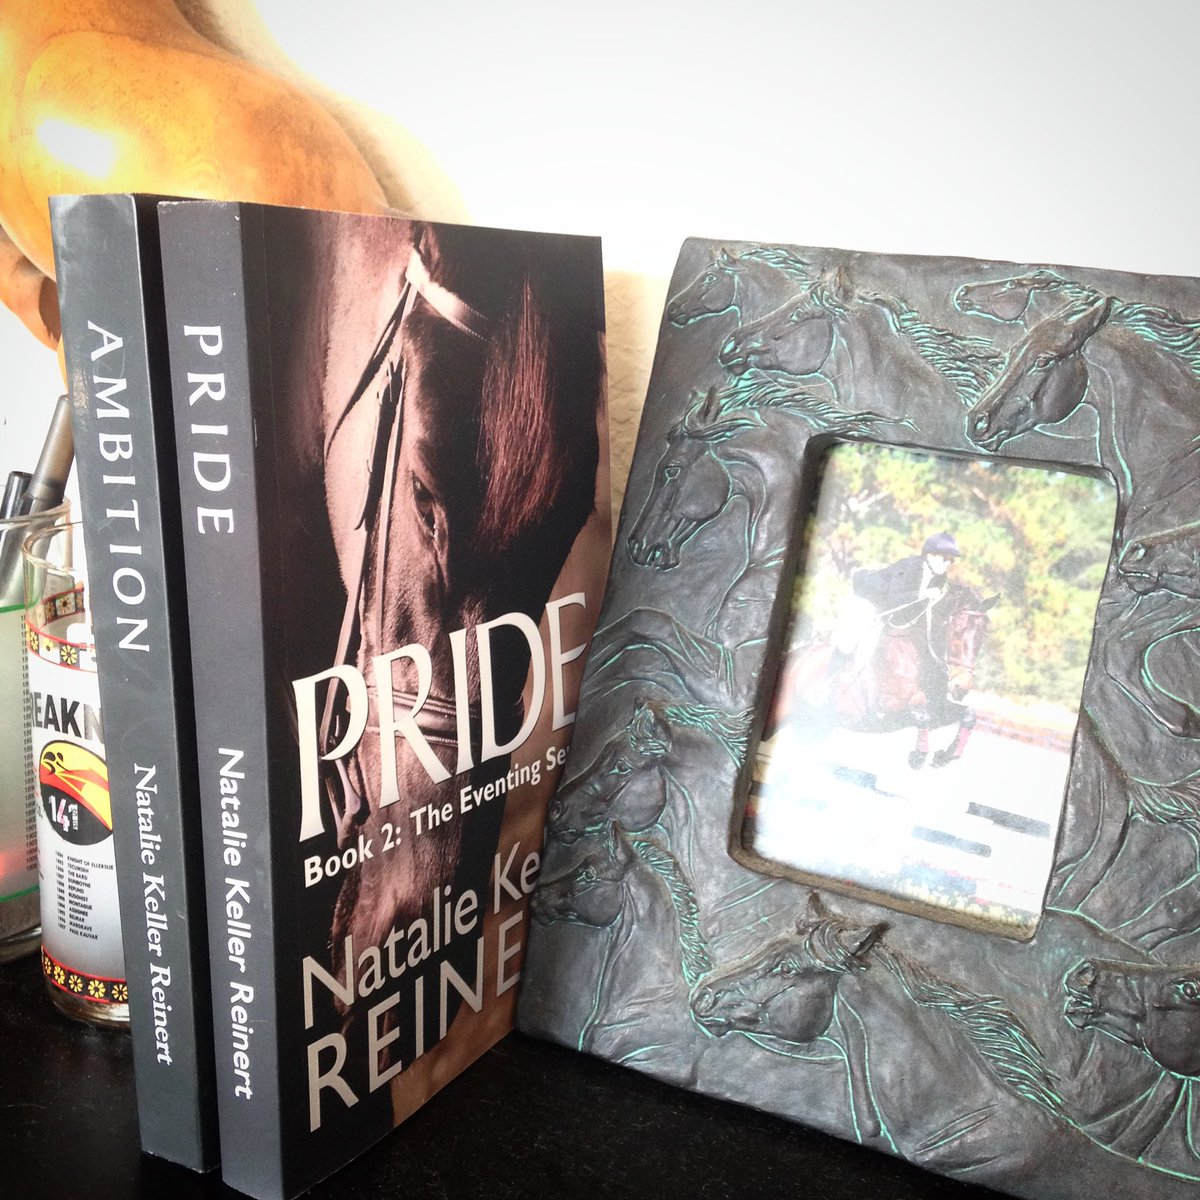 Put some #Eventing on your shelf. Pride: https://t.co/qEMVrQTkAO #horsebooks #equestrianhour #horsehour https://t.co/igmkDvFWYd